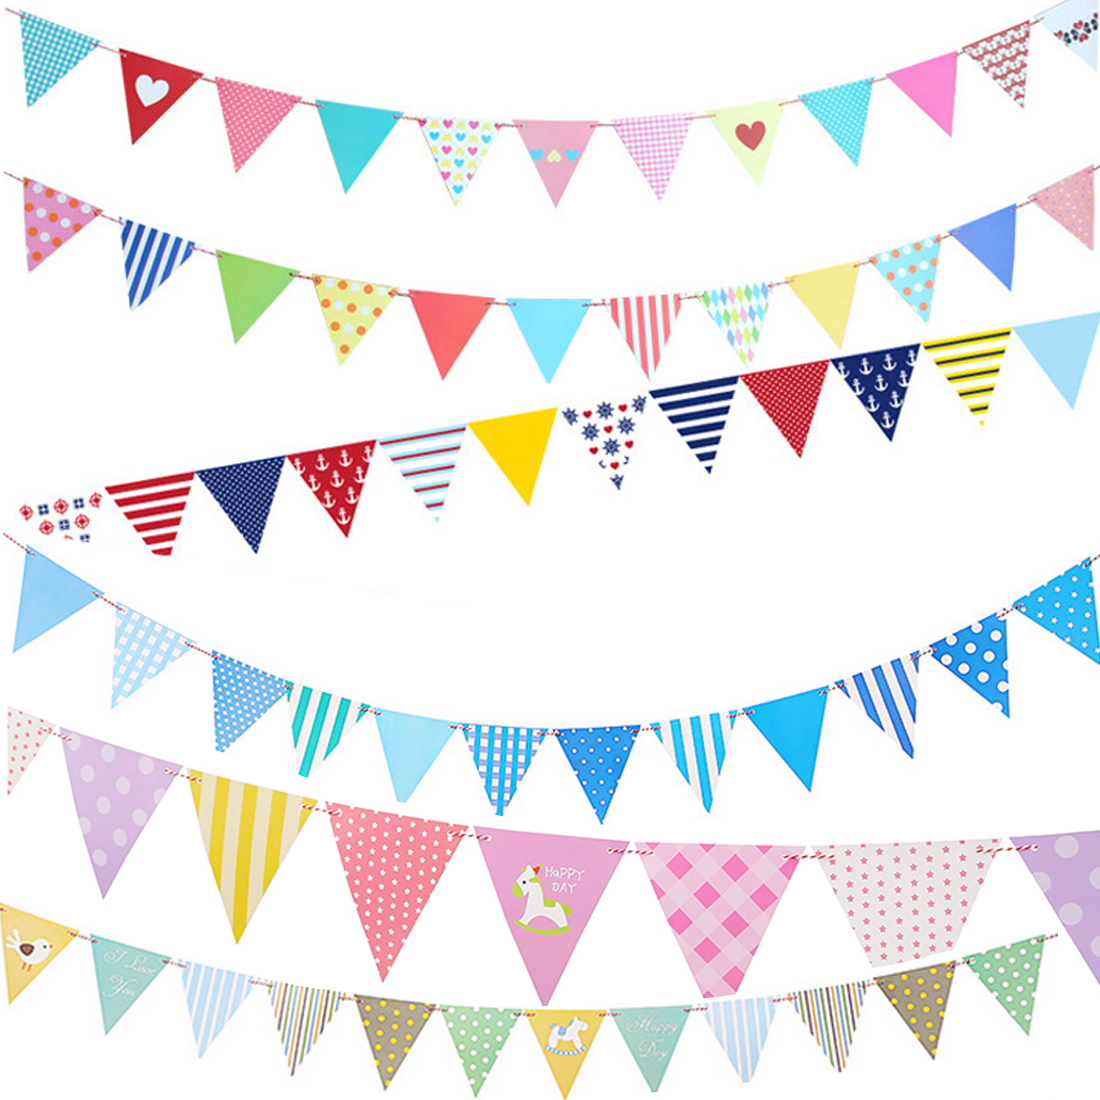 Best 1pc DIY Paper Flags Garland Floral Bunting Banners Kids Birthday Wedding Party Decoration Supplies Childs Room Banner